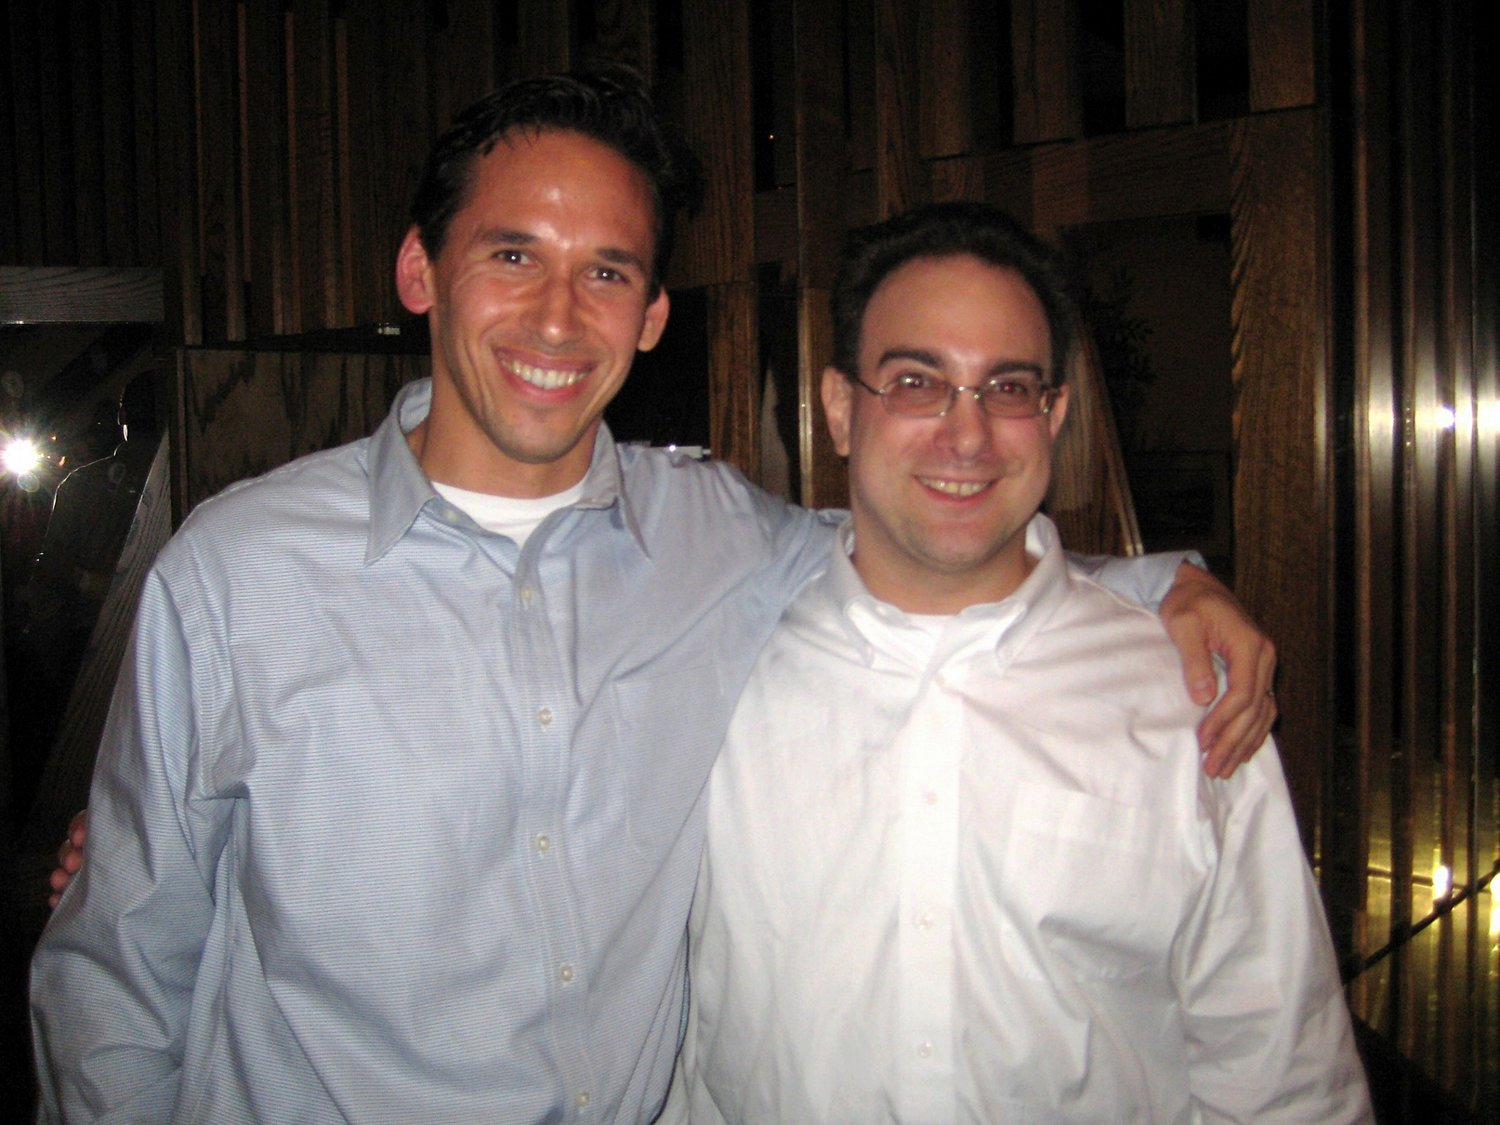 Marc Howard and Marty Tankleff on December 27, 2007, the day that Marty was released after over 17 years of wrongful imprisonment